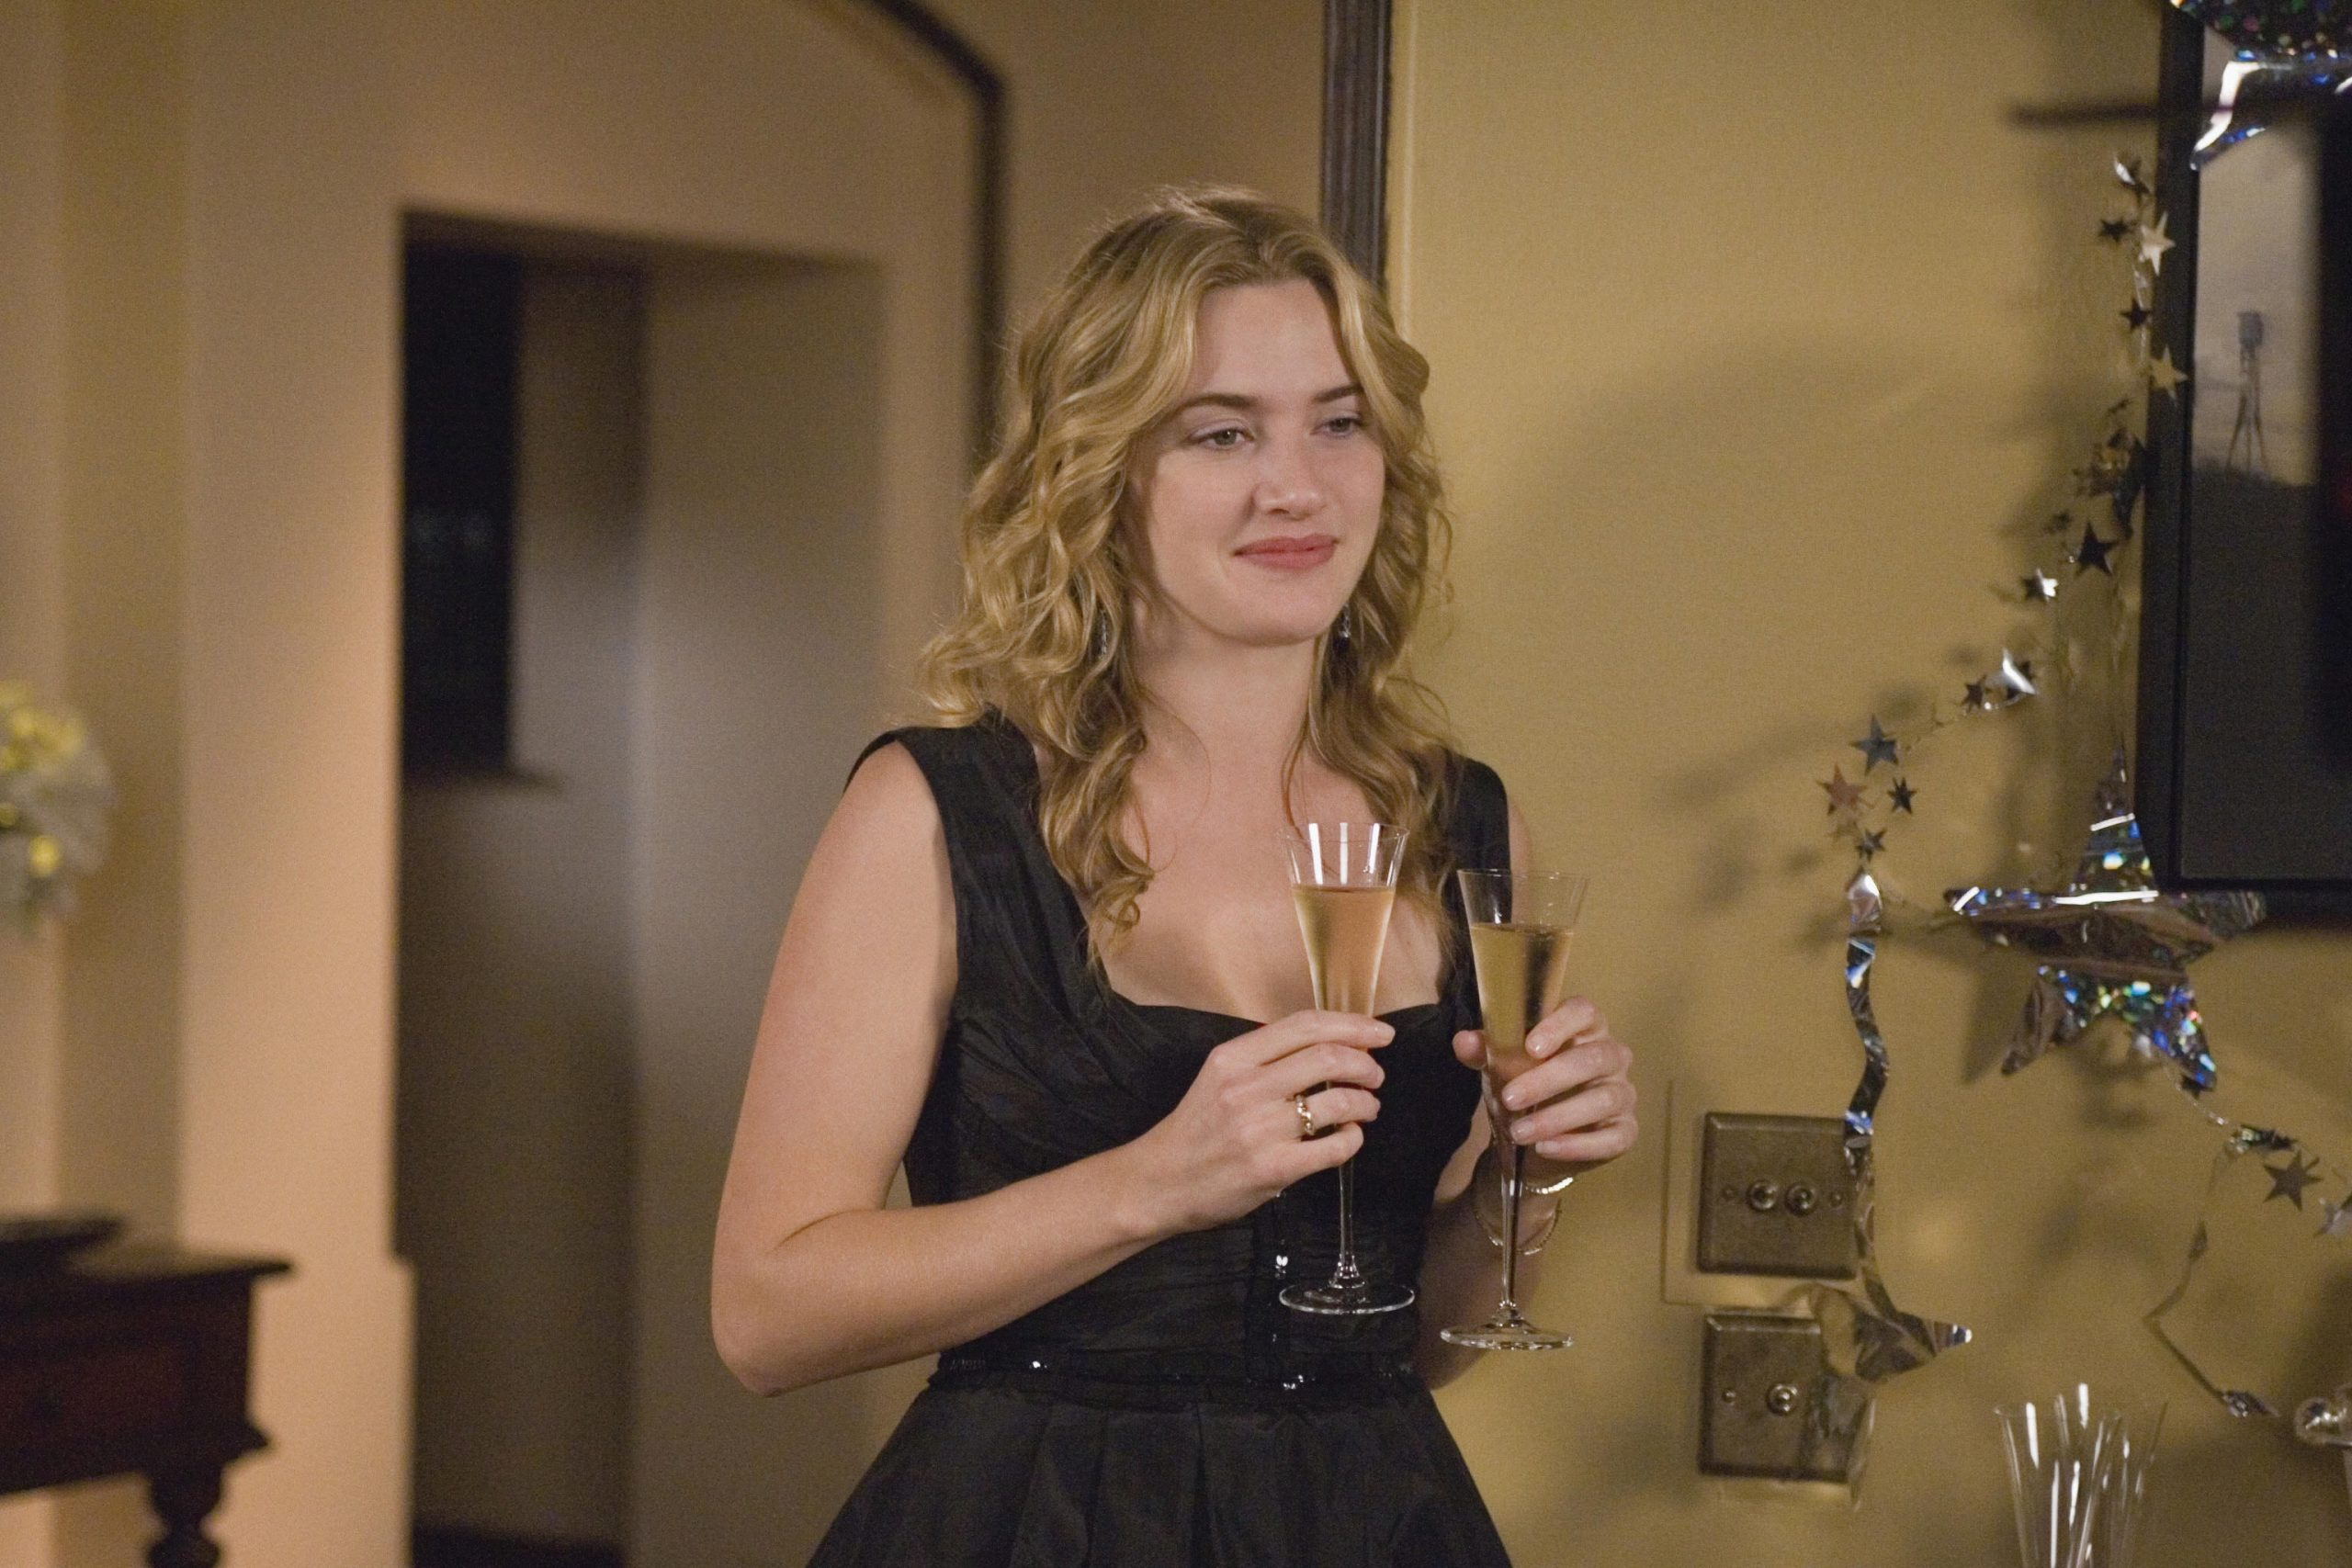 An image from the Holiday of Kate Winslet as Iris